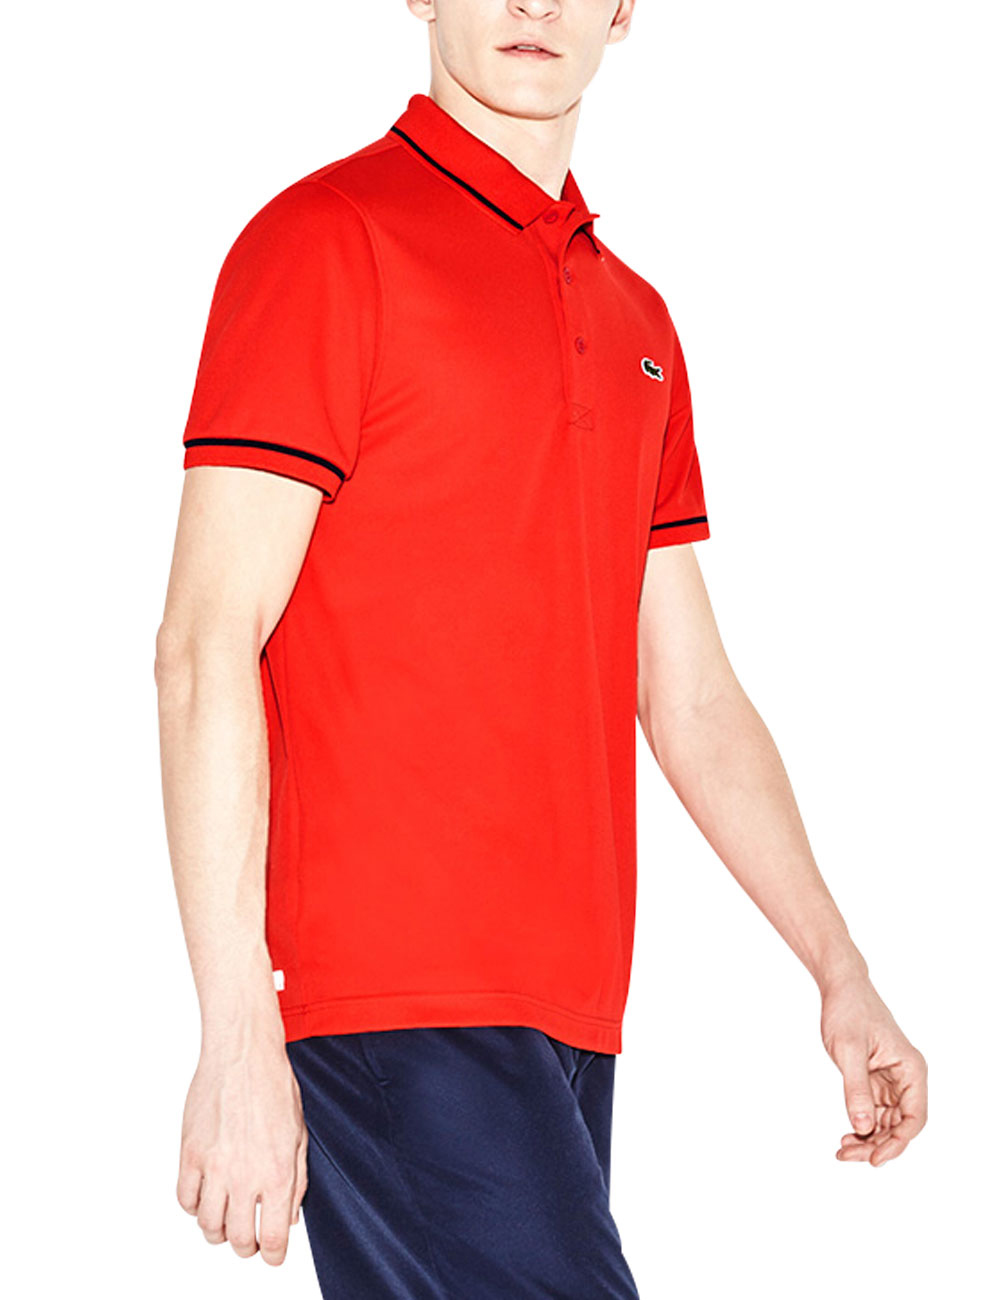 finest selection 10241 9ea8a Herren-Polo, Lacoste, rot